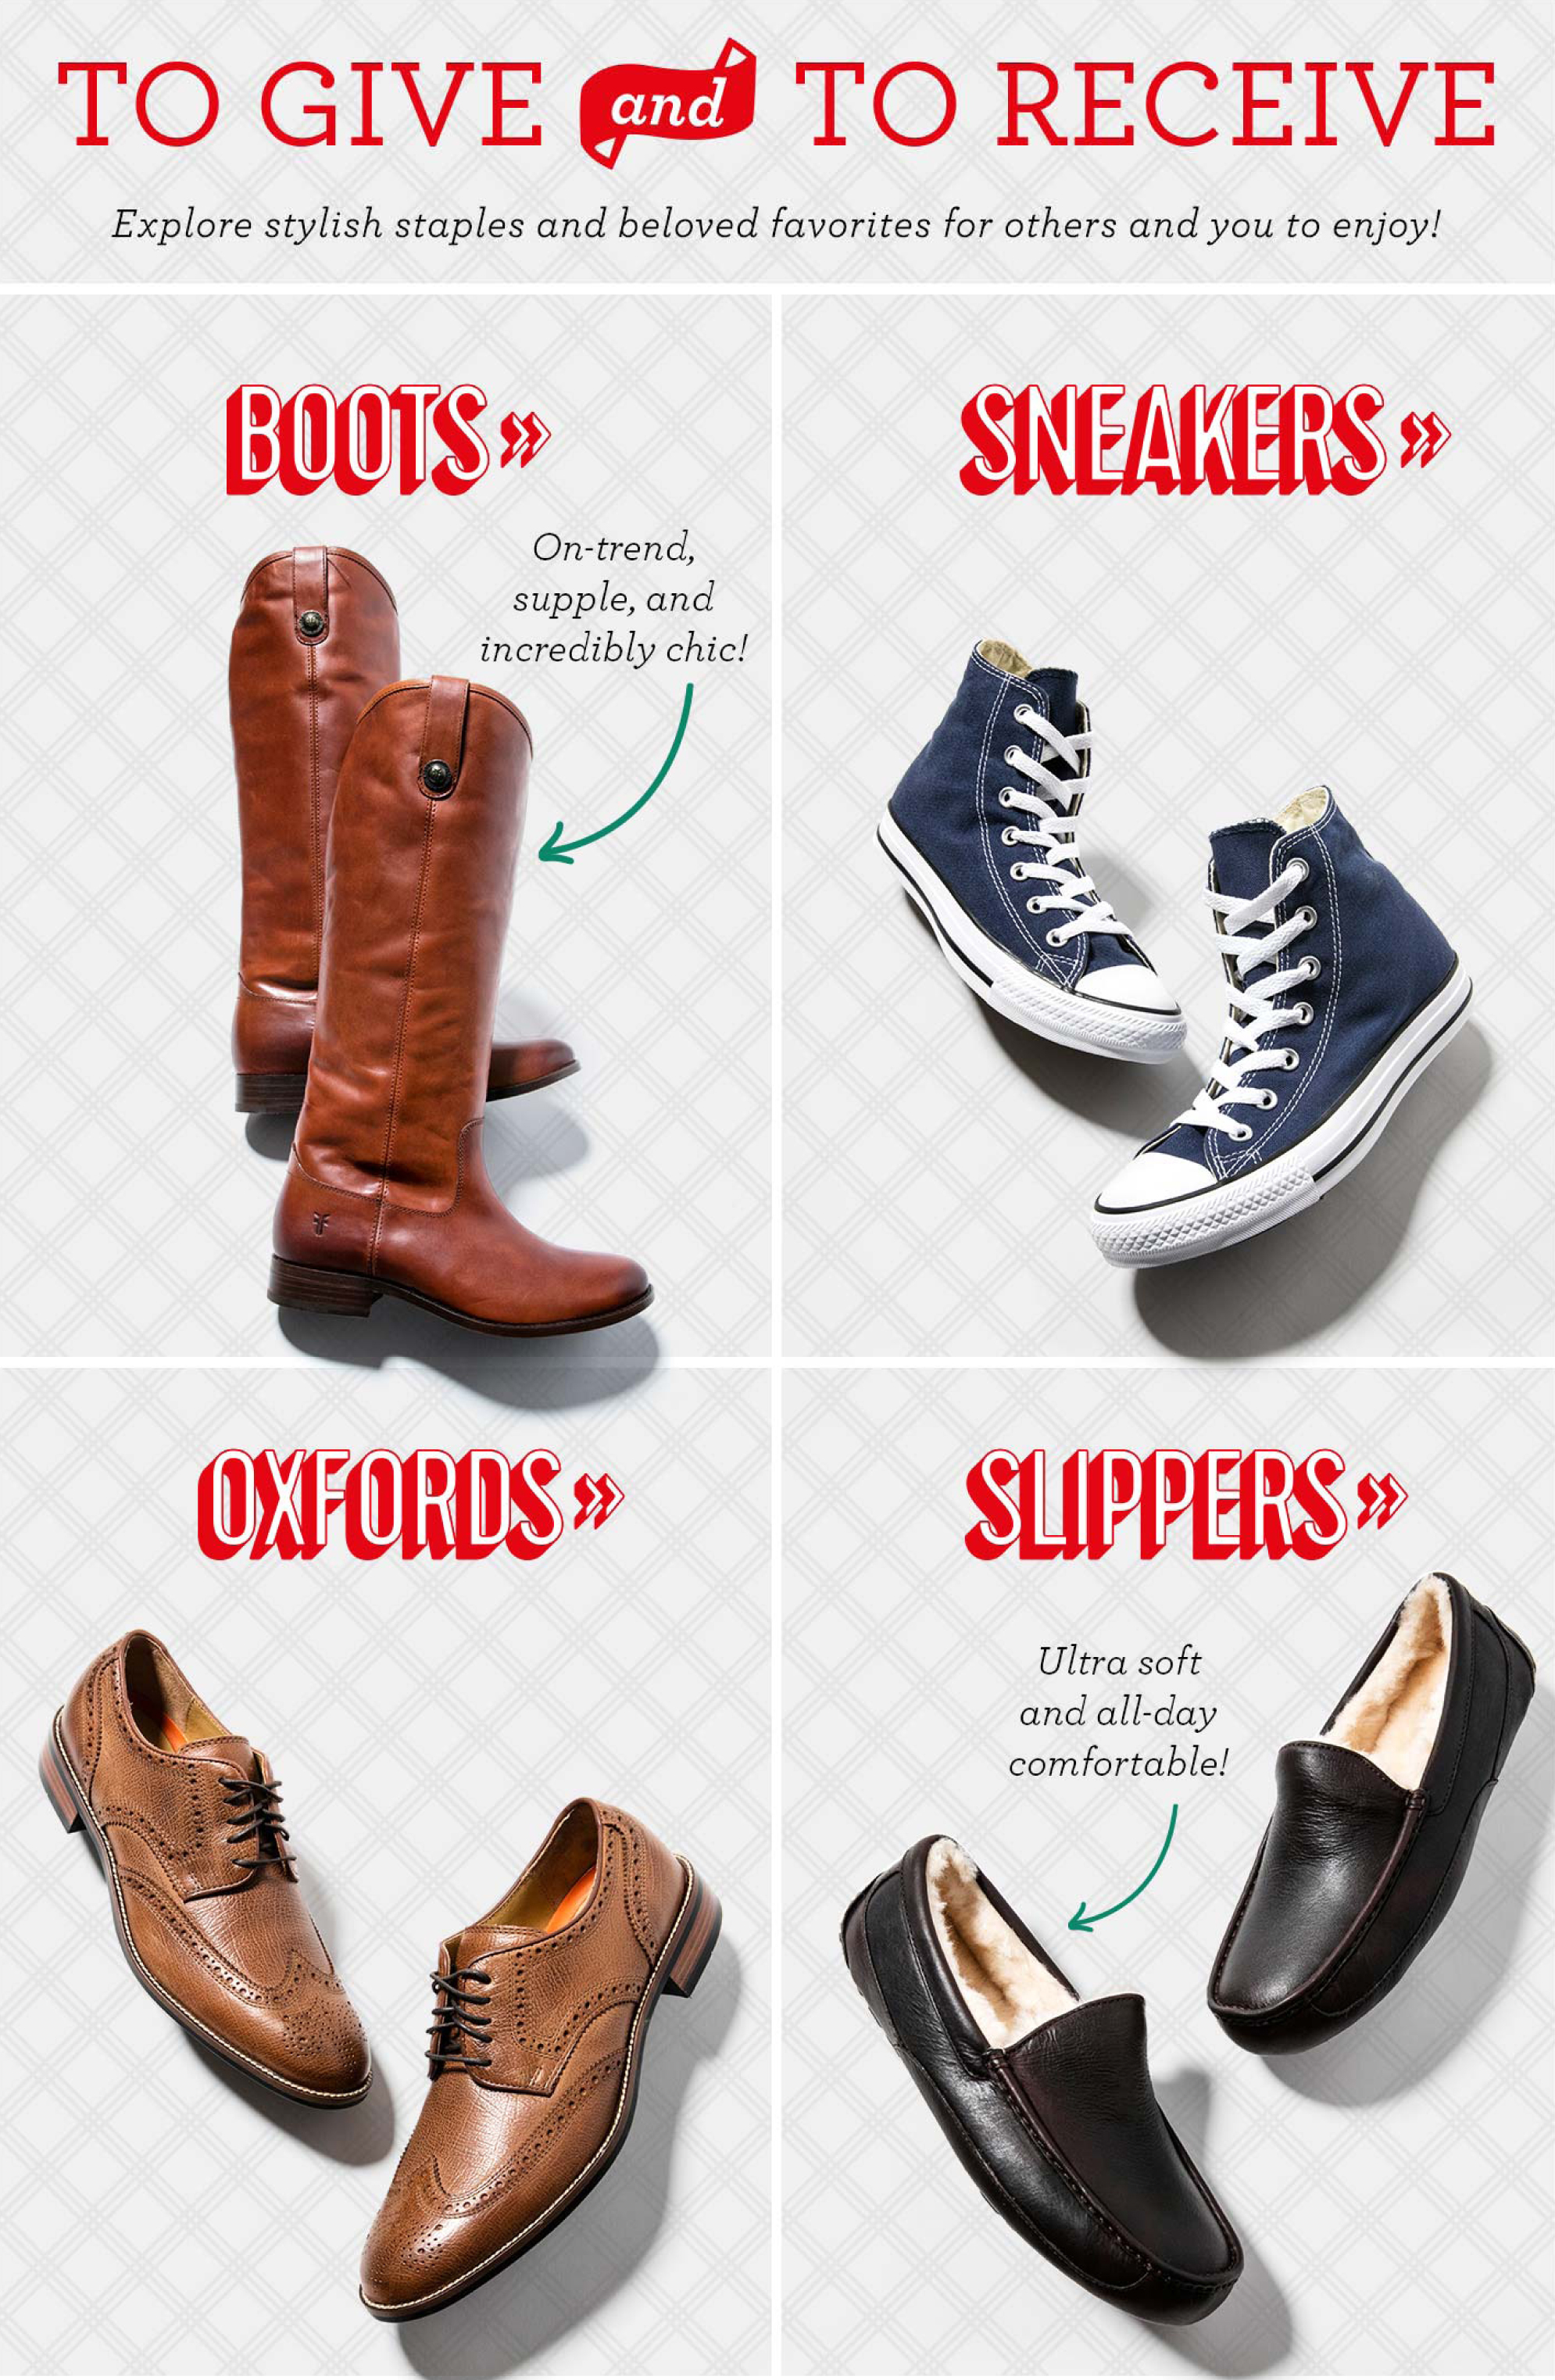 zappos-gift-guide-1